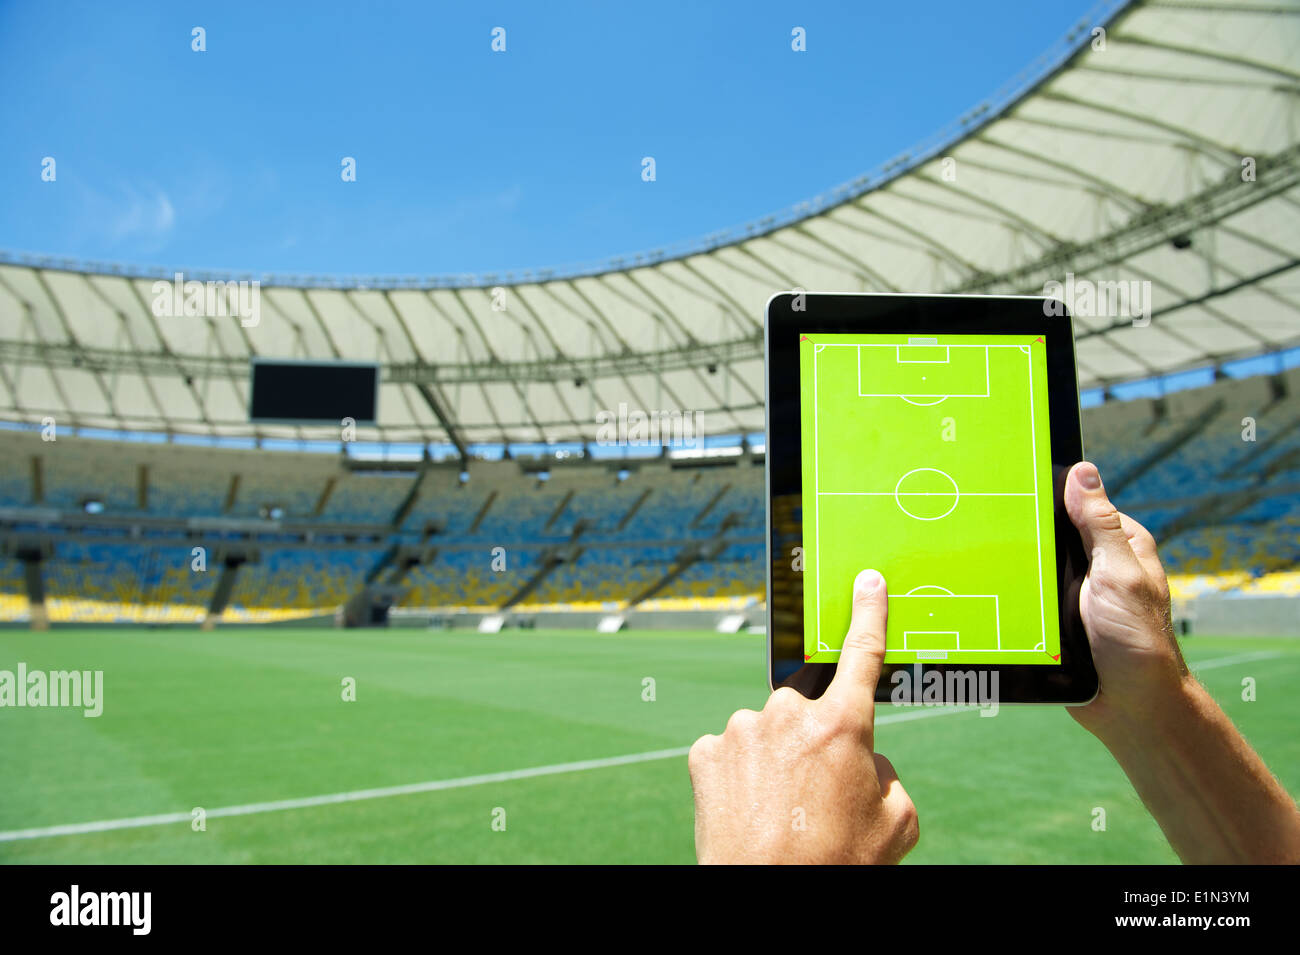 Hands Planning Match On Blank Tactics Board In Front Of Soccer Field At Football Stadium Rio De Janeiro Brazil